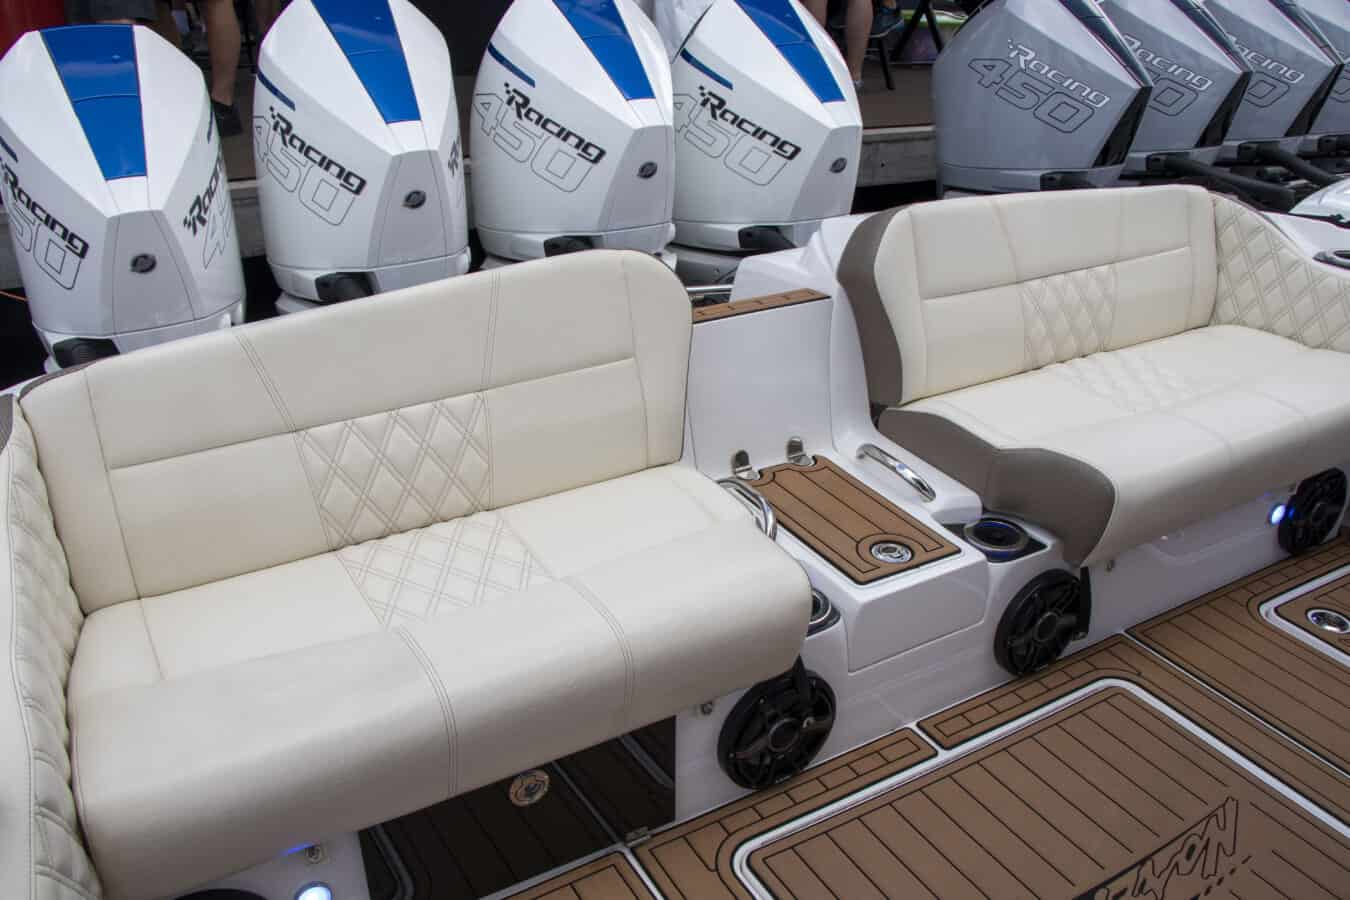 New  2021 45' Nor-tech 450 Sport Boat Engine in Metairie,